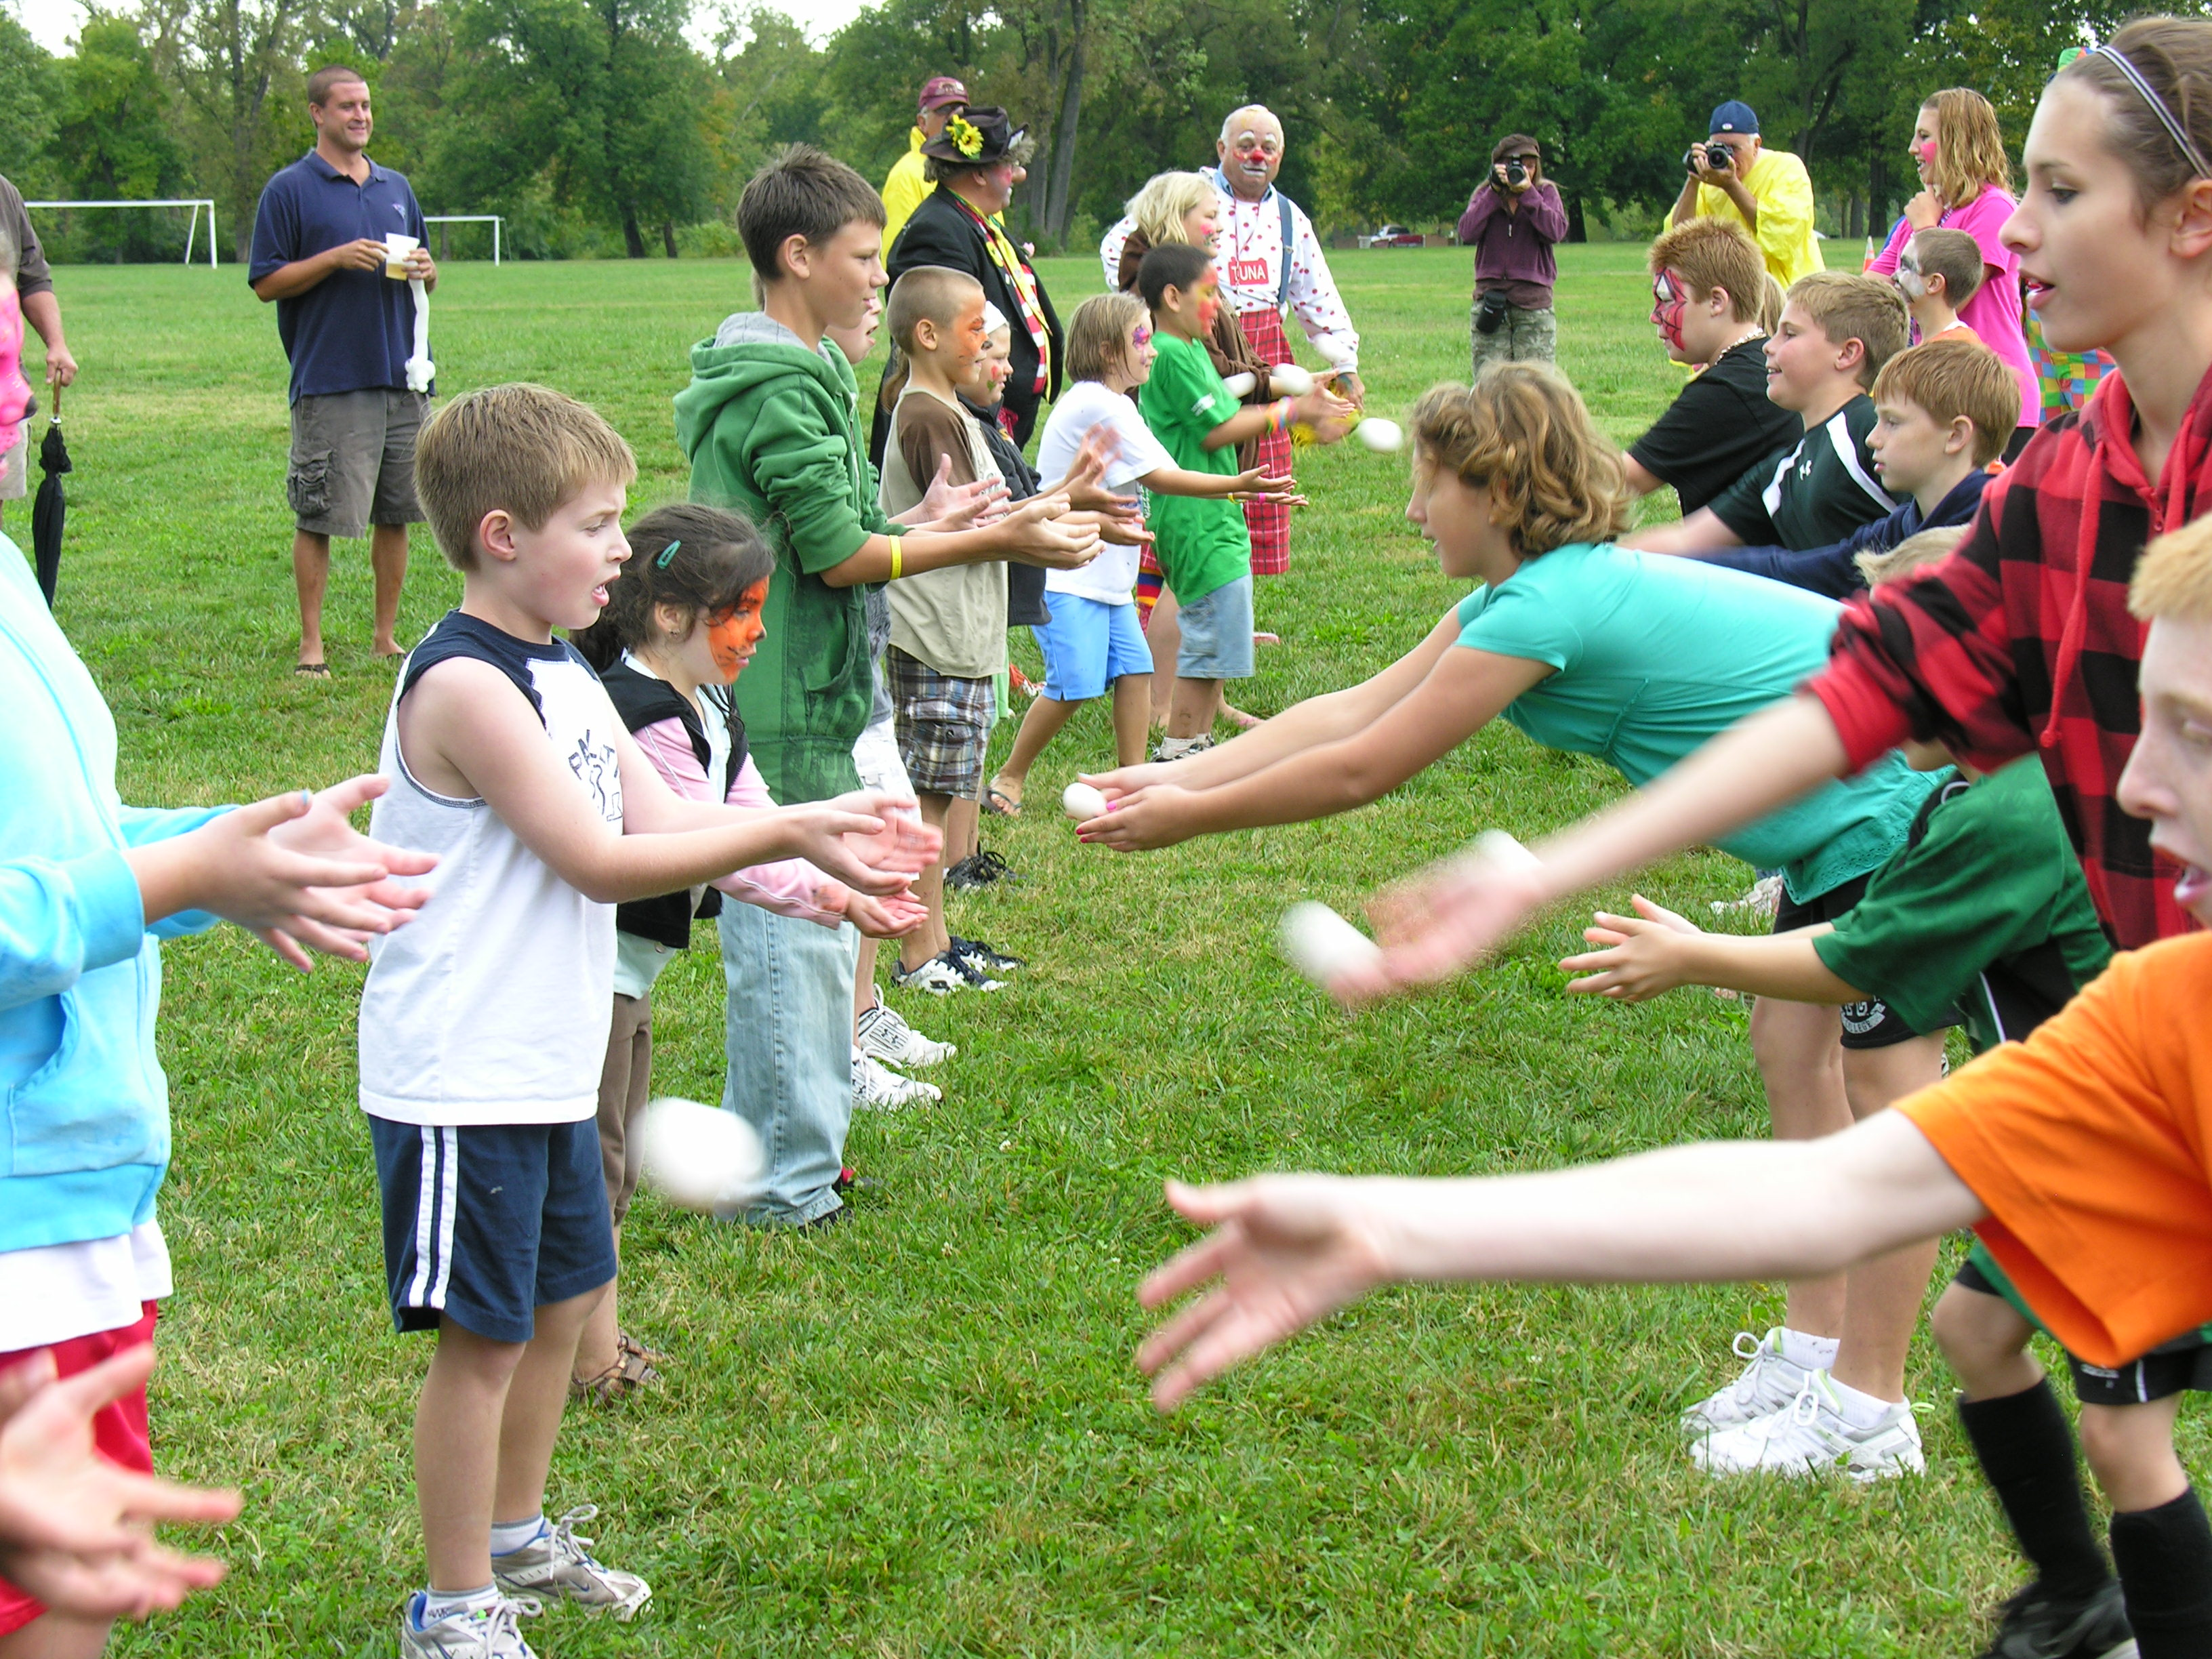 Outdoor Team Building Activities For Large Groups